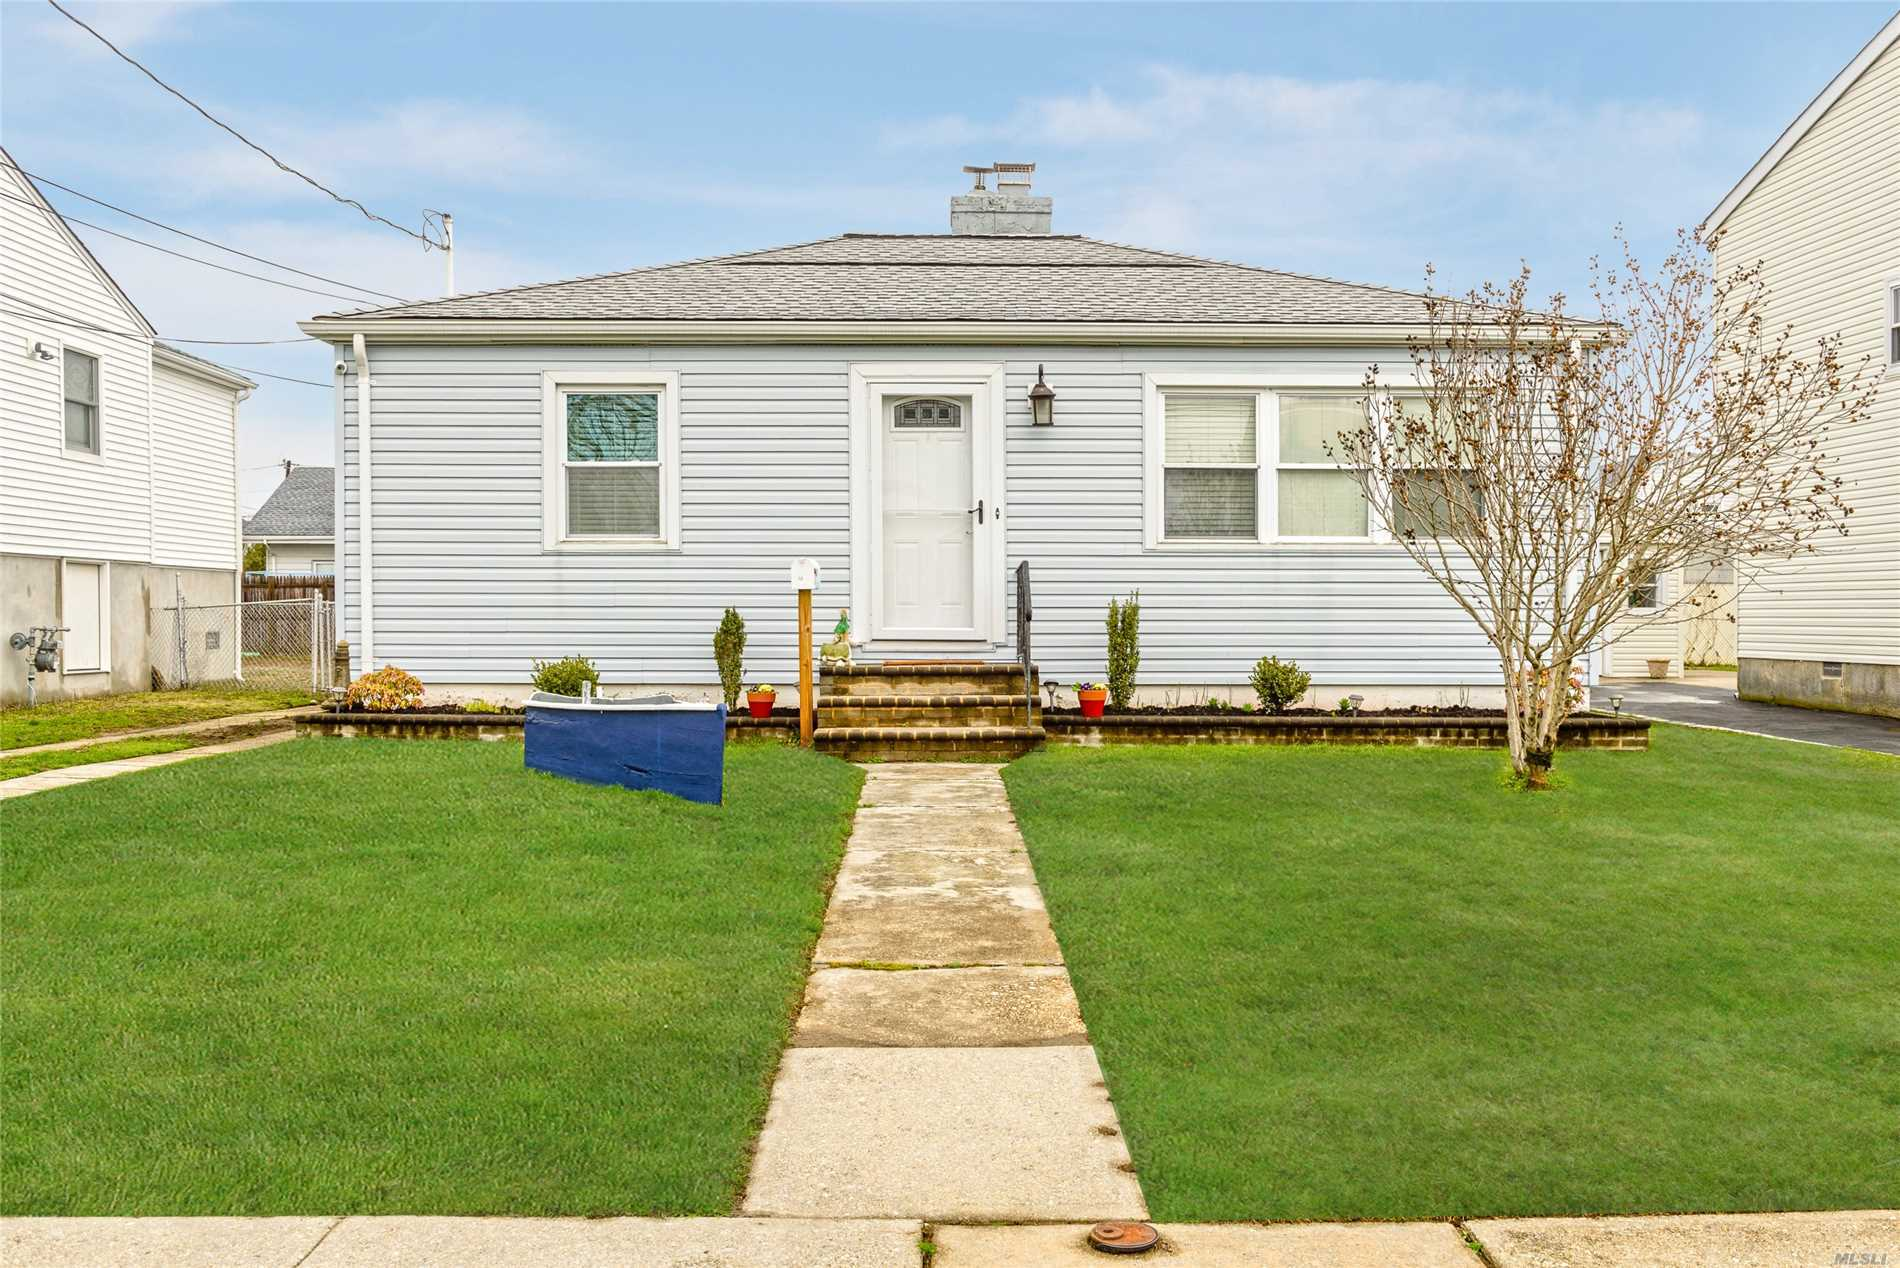 Lovely 2 Bedroom Ranch In South Freeport For $319, 000. Completely Updated With Granite Kitchen & Stainless Steel Appliances, Hardwood Floors, Fireplace & 1.5 Car Garage! Boasting Wonderful Curb Appeal, Situated On A Quiet Street, Close To Nautical Mile! Move Right In!